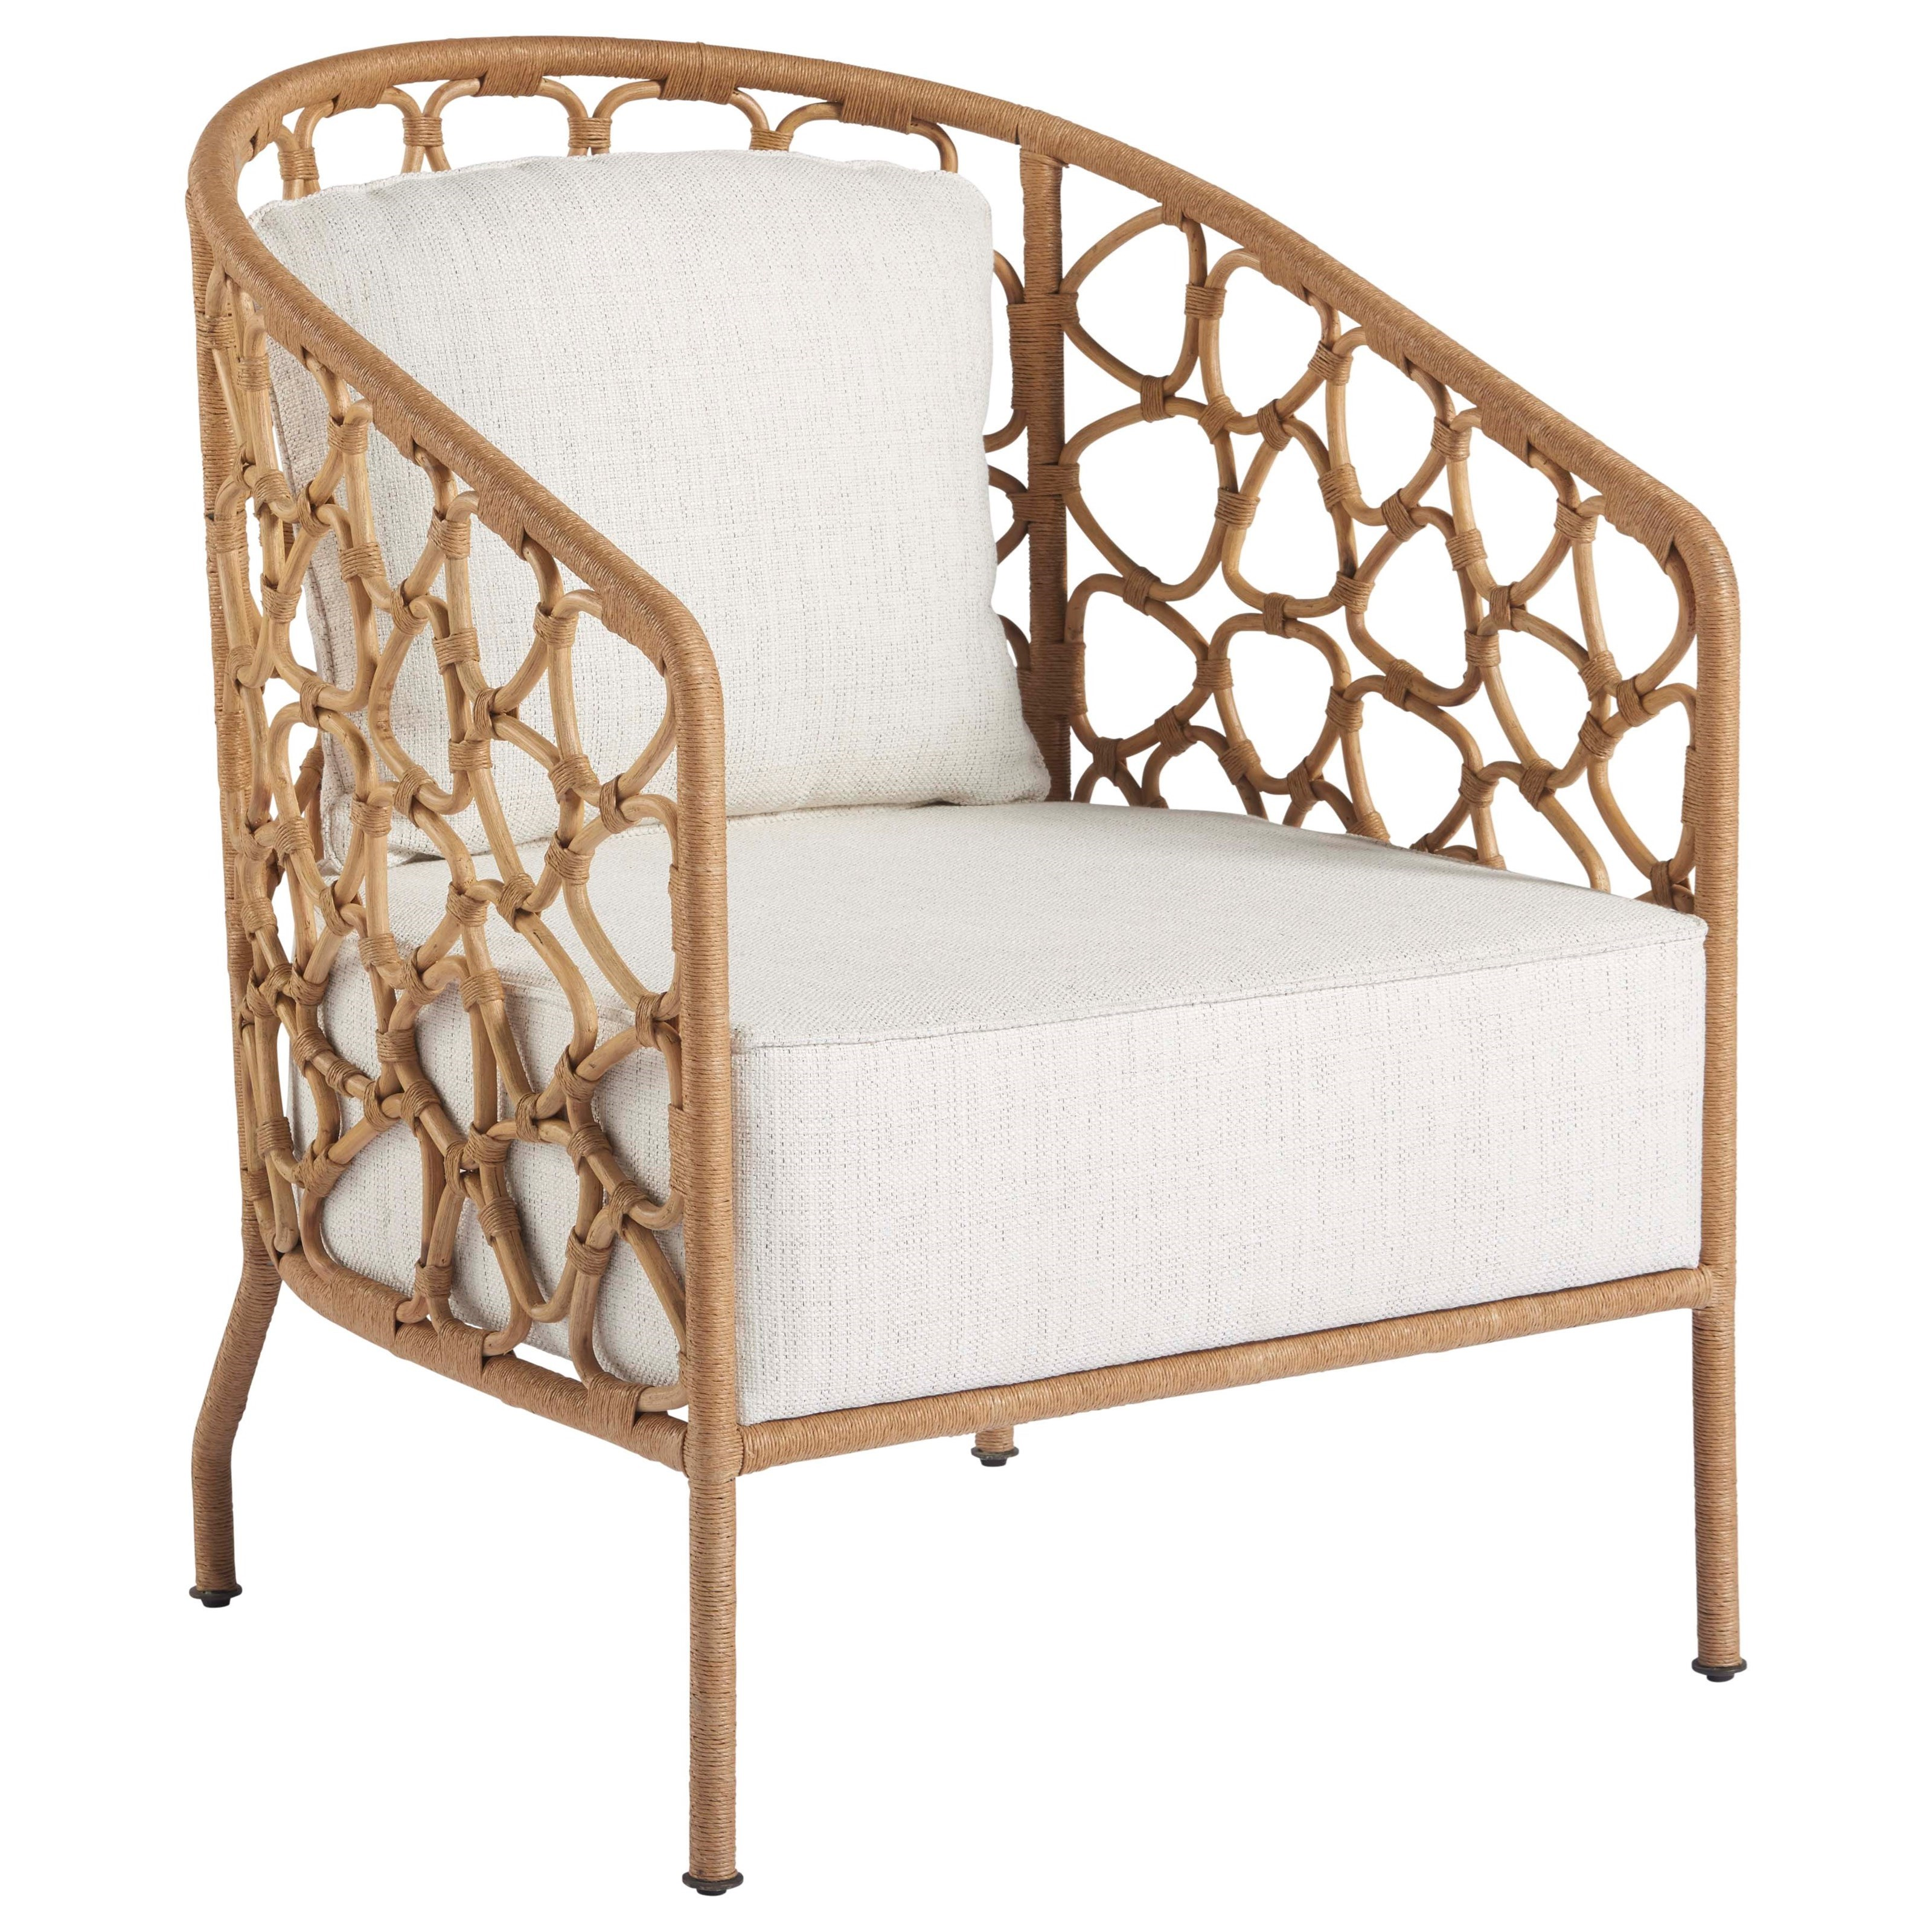 Coastal Living Home - Escape Chair by Universal at HomeWorld Furniture